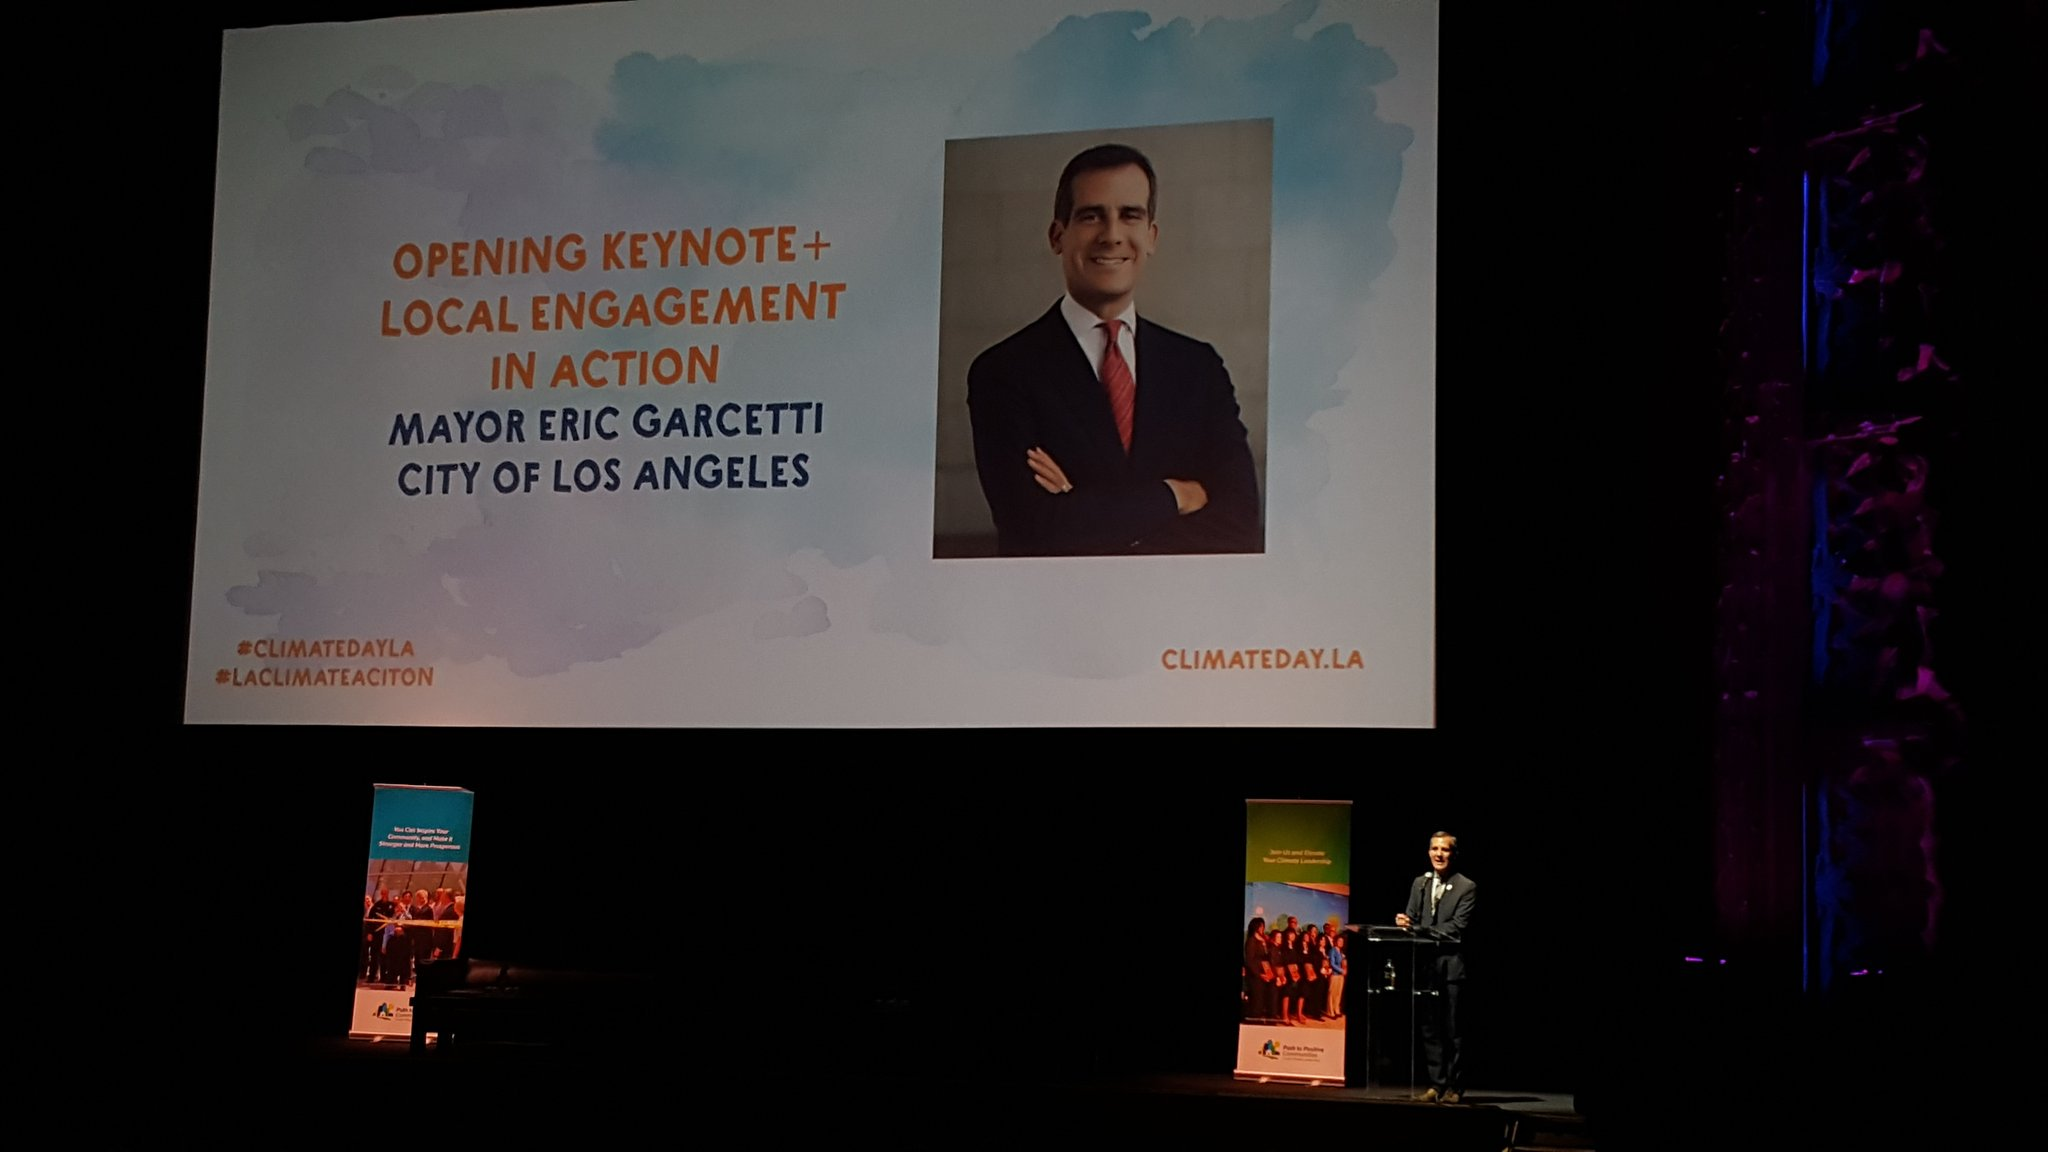 Proud of the leadership of @ericgarcetti  #climatemayors #climatedayLA & our committmemt to uphold goals of Paris Agreement @AIALosAngeles https://t.co/5pwn17ALQu